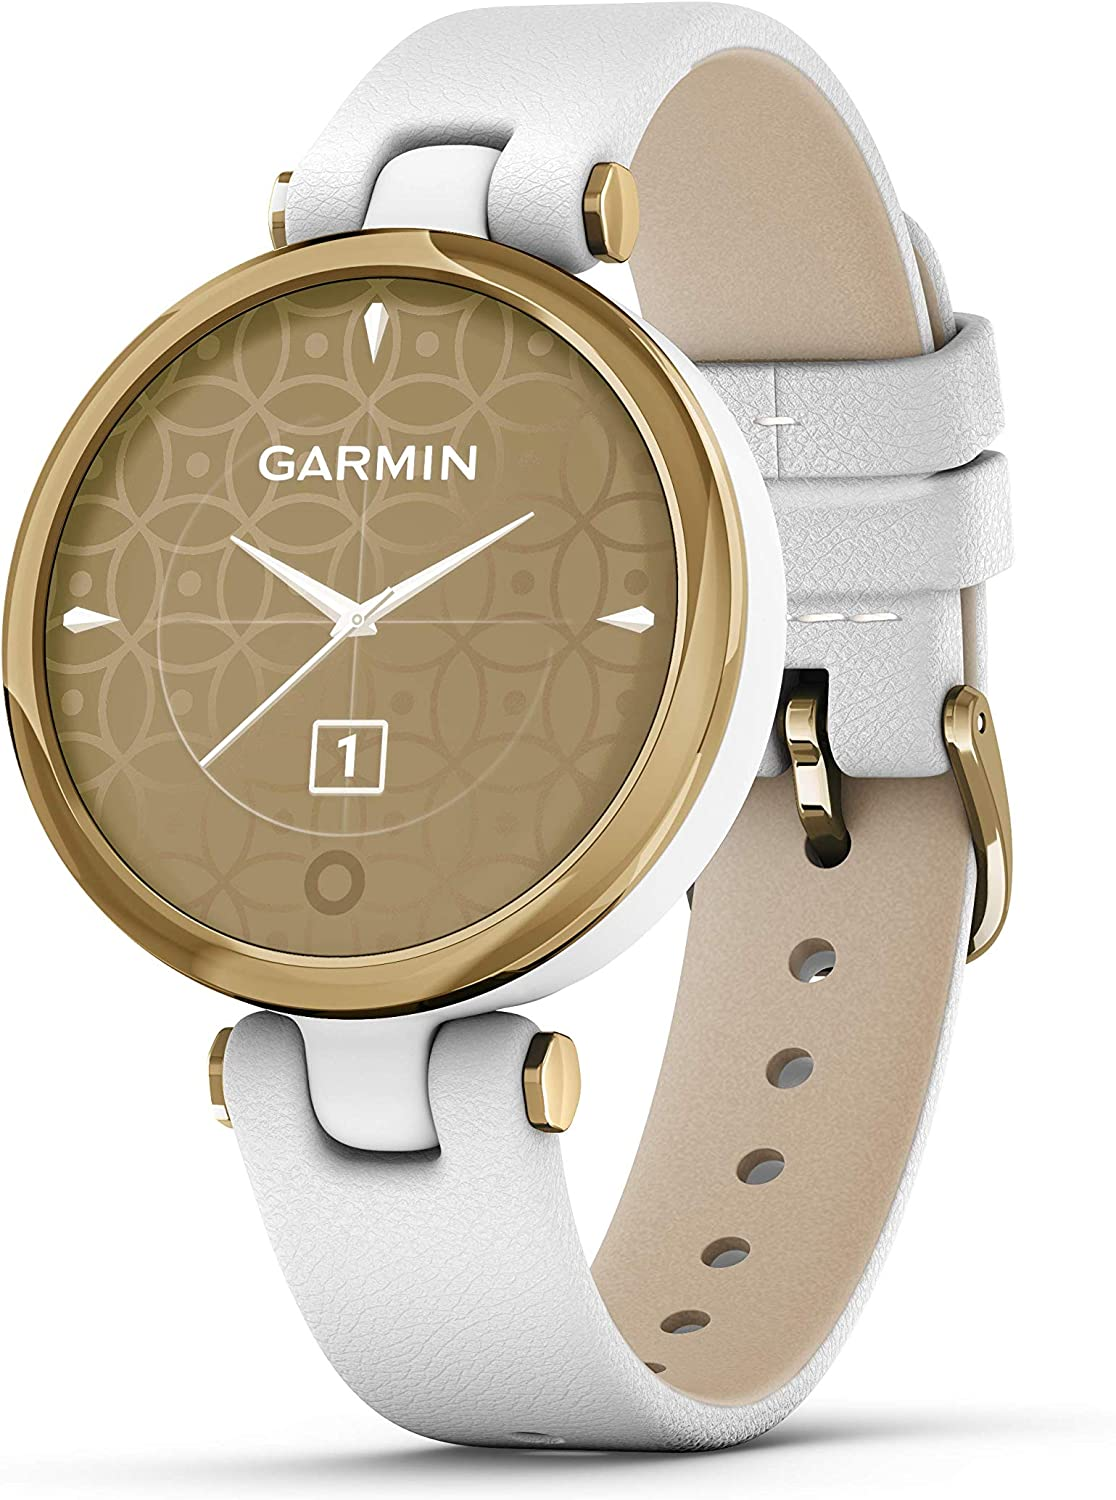 Power Bundle Leather Band Garmin Lily Classic Small /& Stylish Womens Smartwatch with PlayBetter 2200mAh Portable Charger Dark Bronze//Paloma Leather GPS Fitness Smartwatch